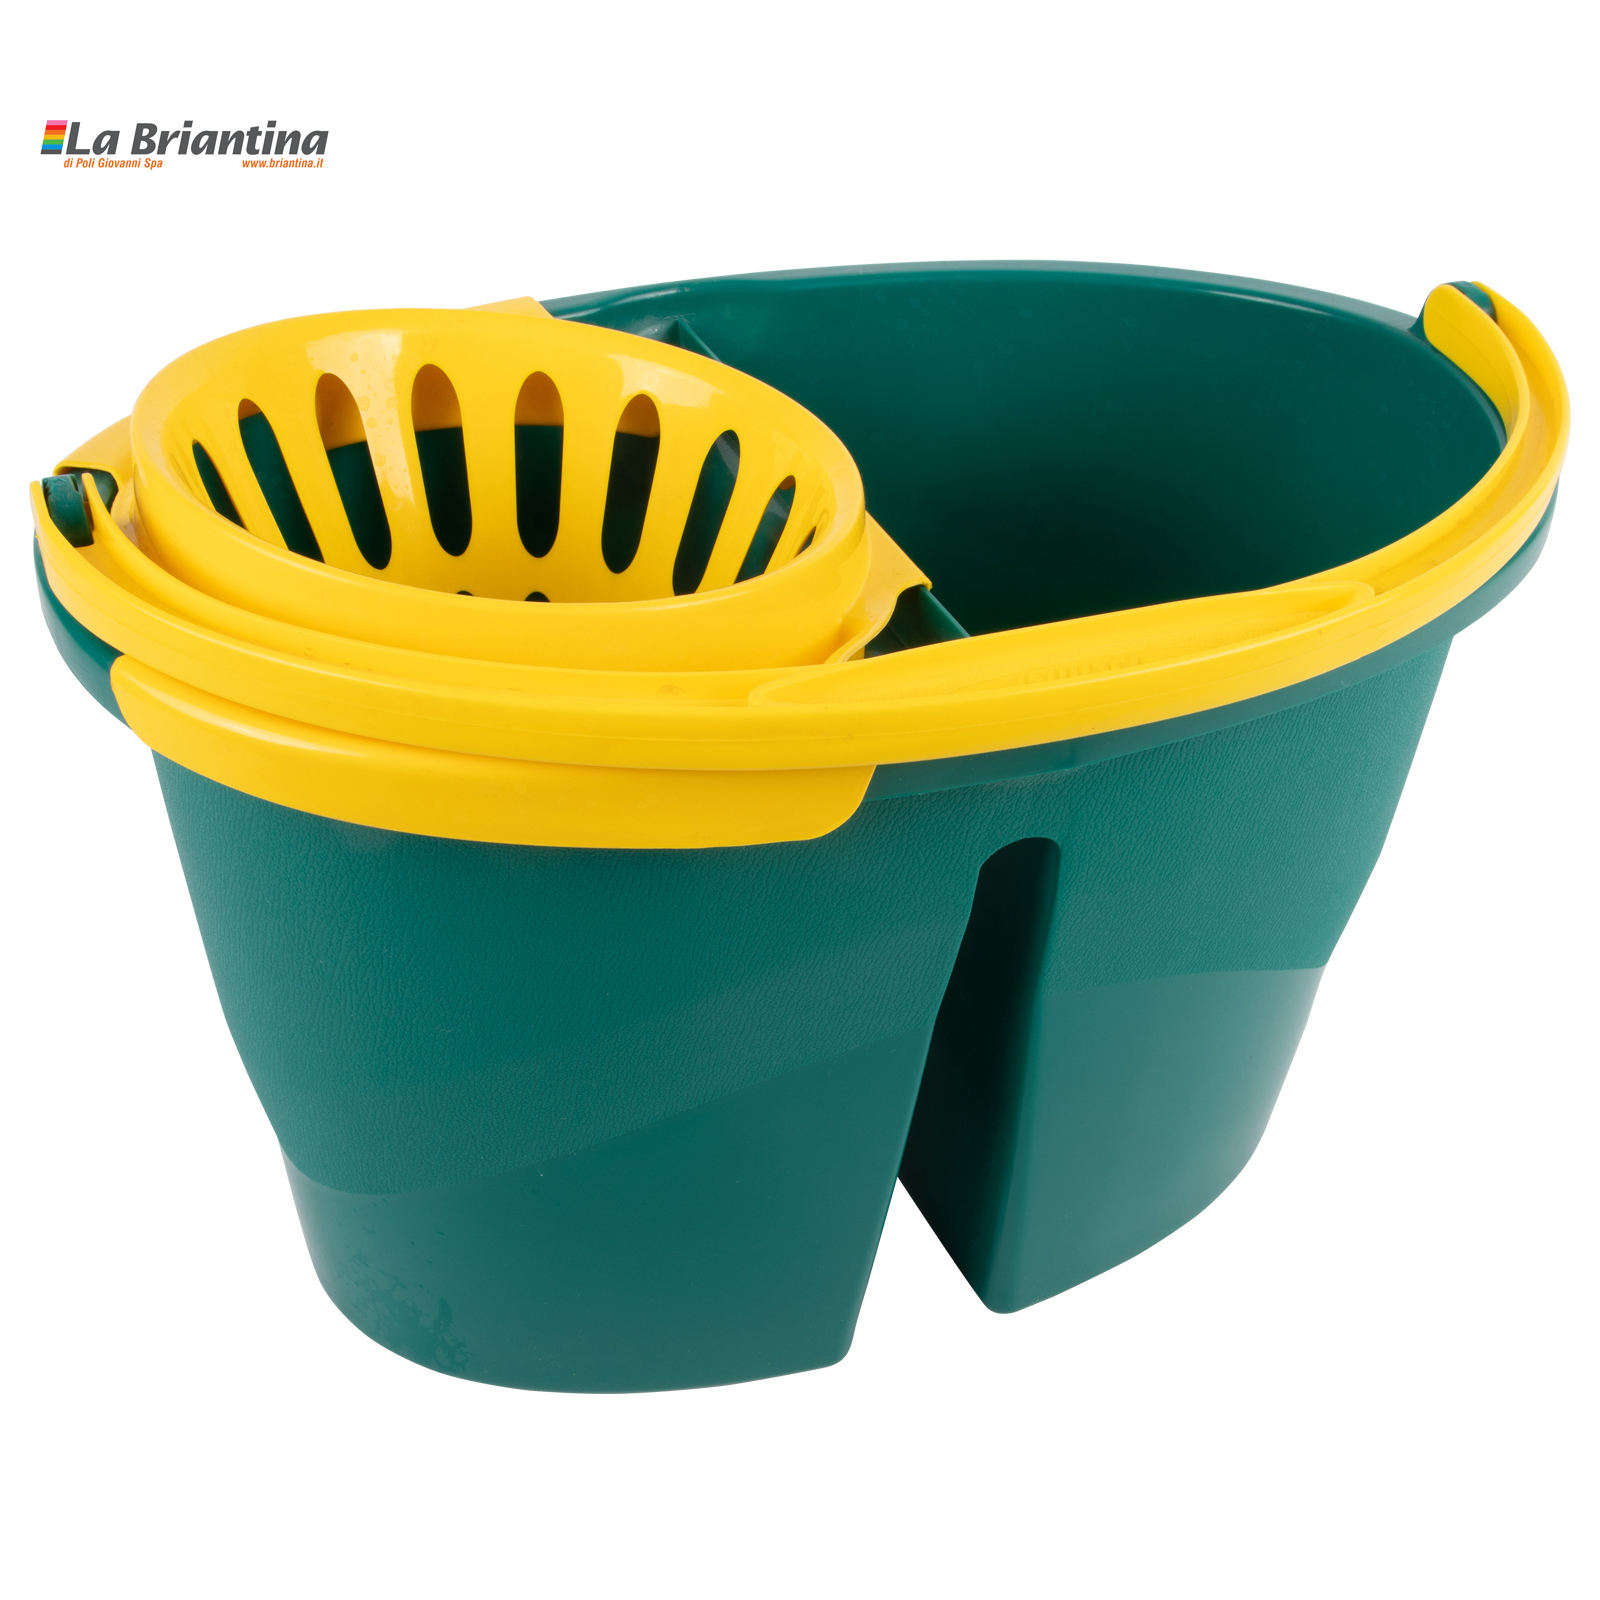 Plastic bucket with two tanks (8 + 8 liters) with wringer. Plastic handle